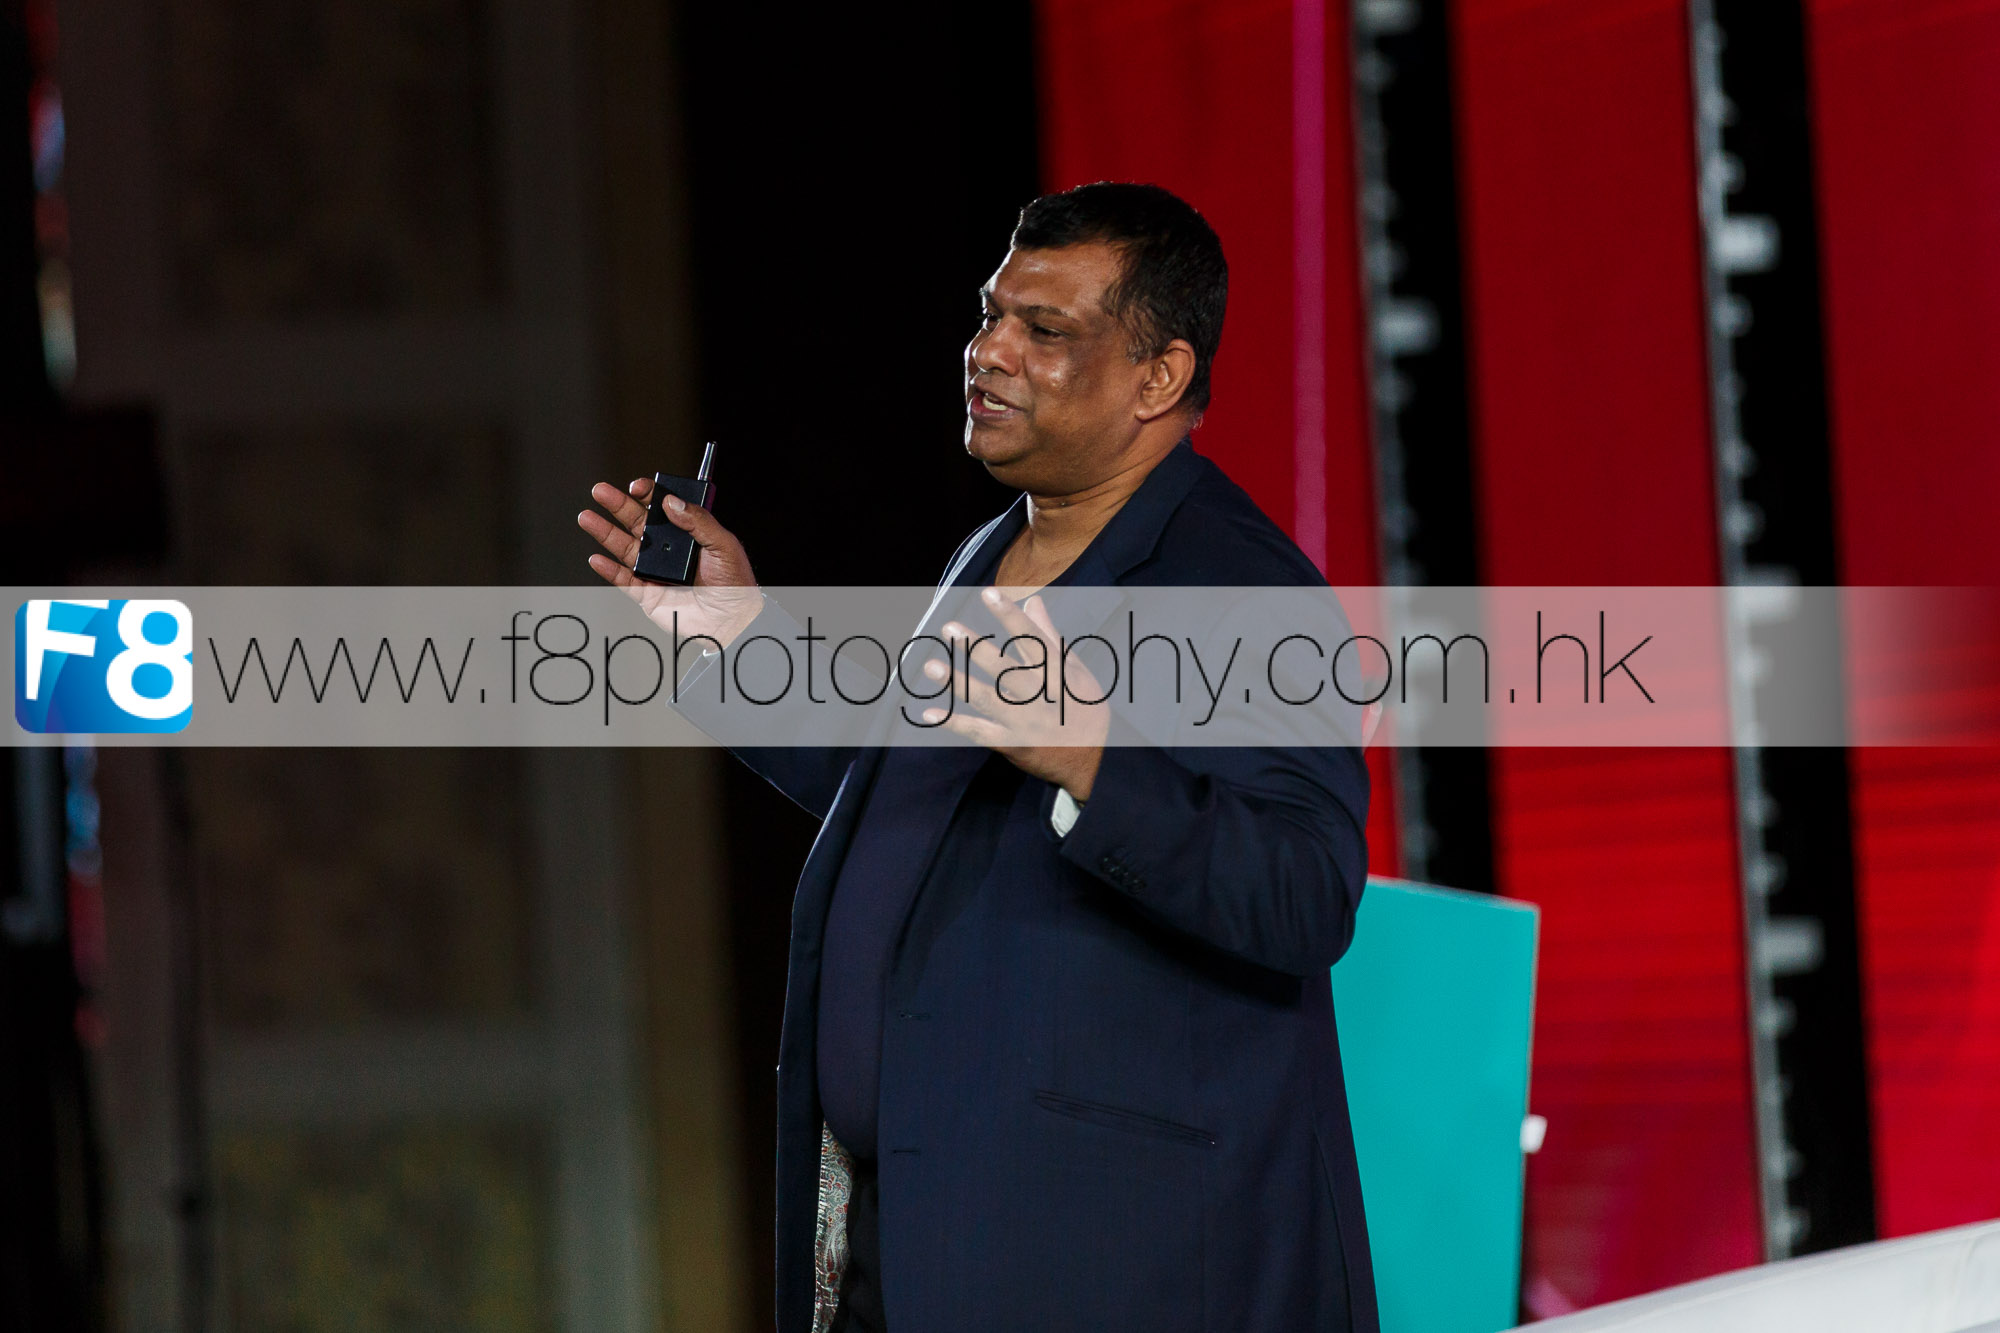 Founder of Air Asia Mr Tony Fernandes.